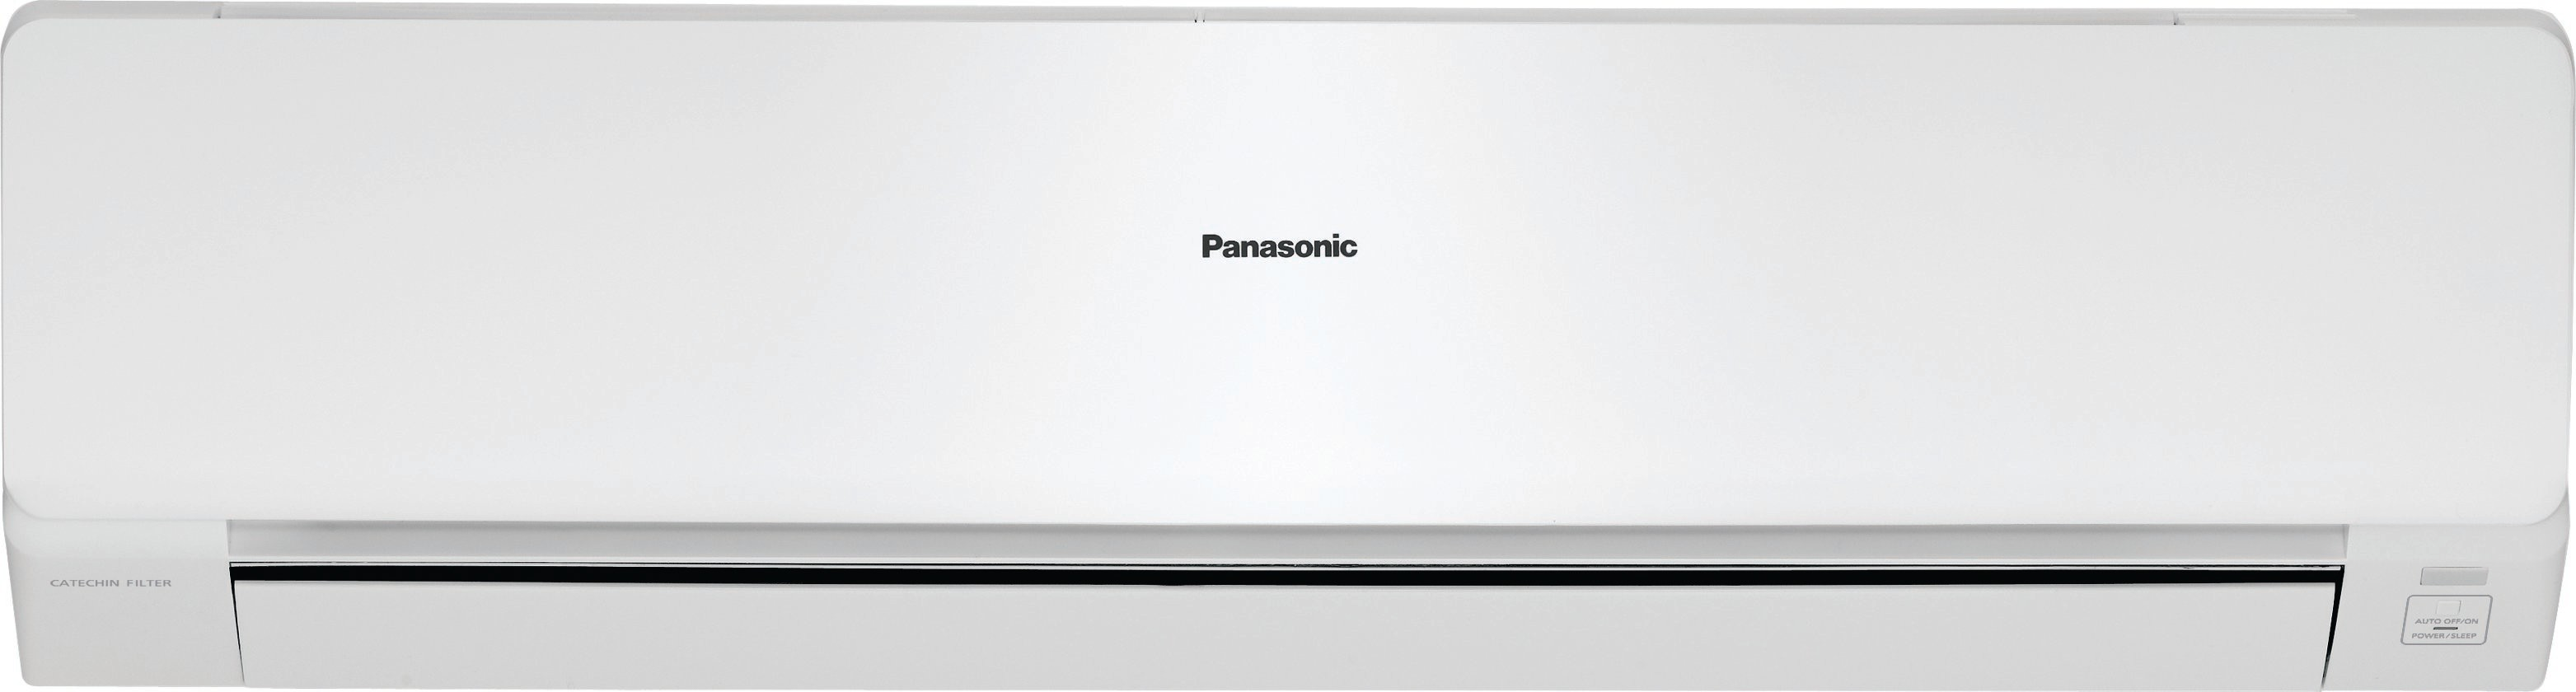 Shopping Sites for Panasonic Air Conditioners with Price Comparison #1A1C1D